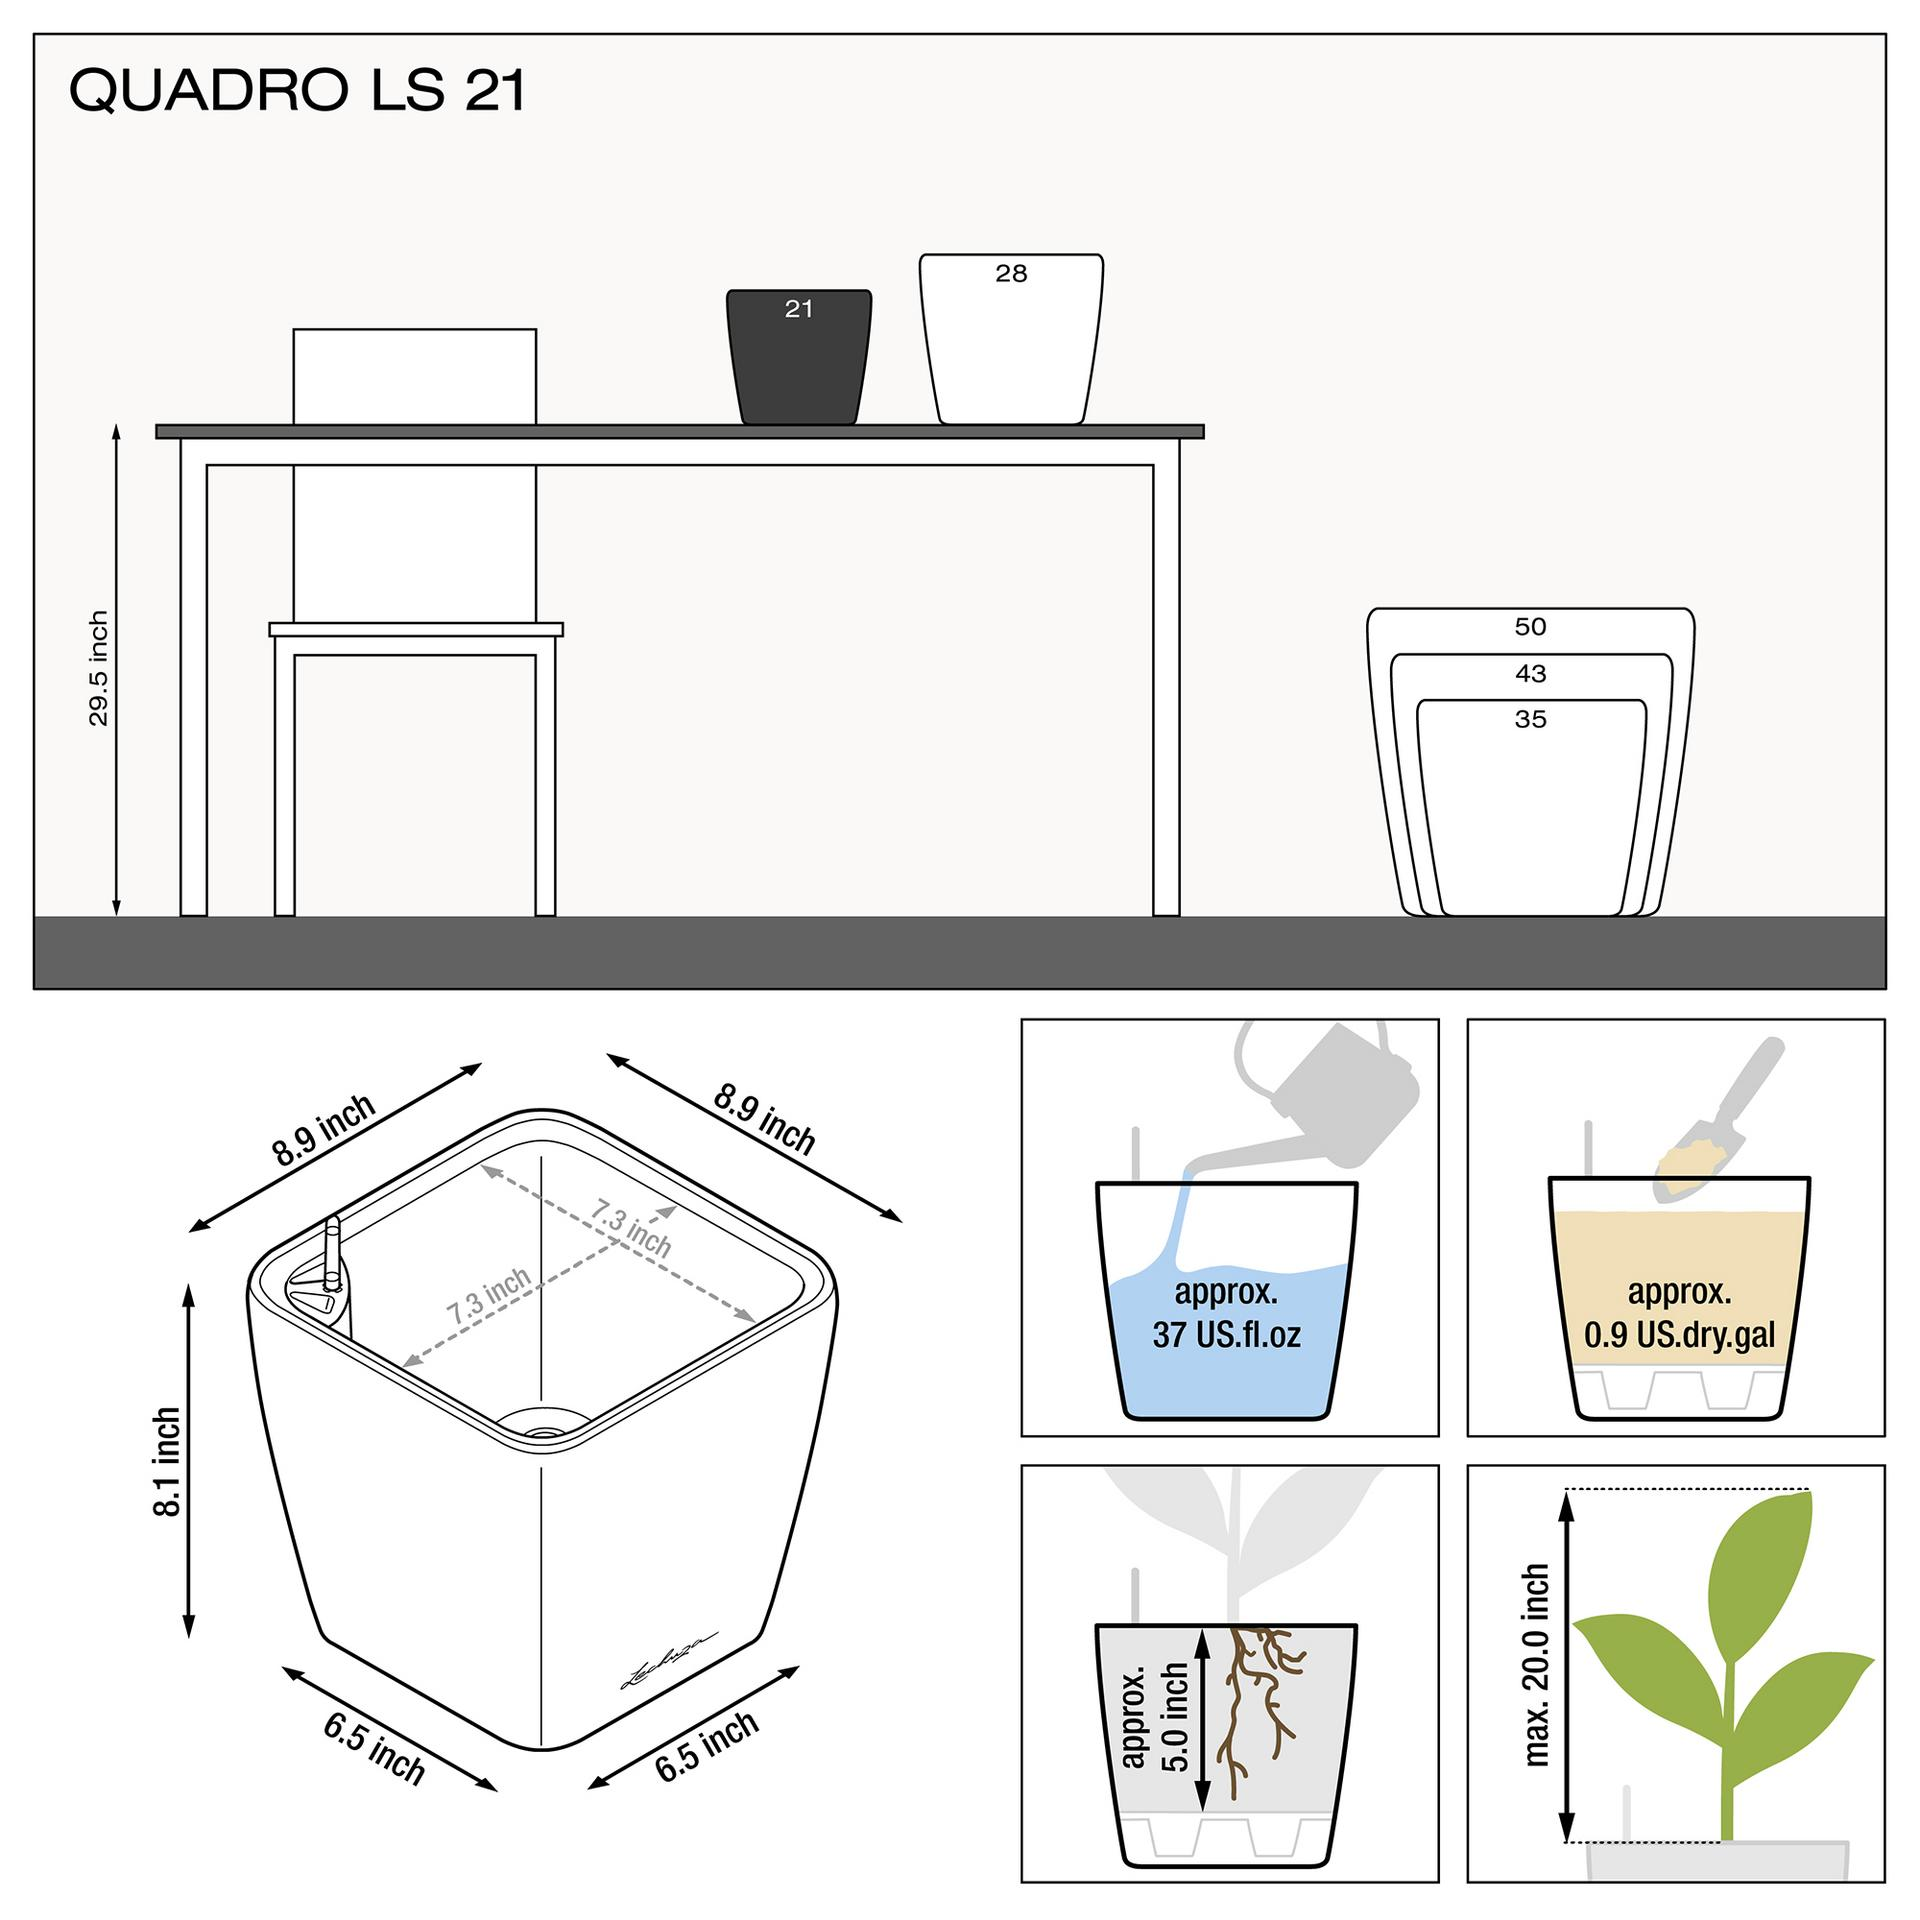 le_quadro-ls21_product_addi_nz_us